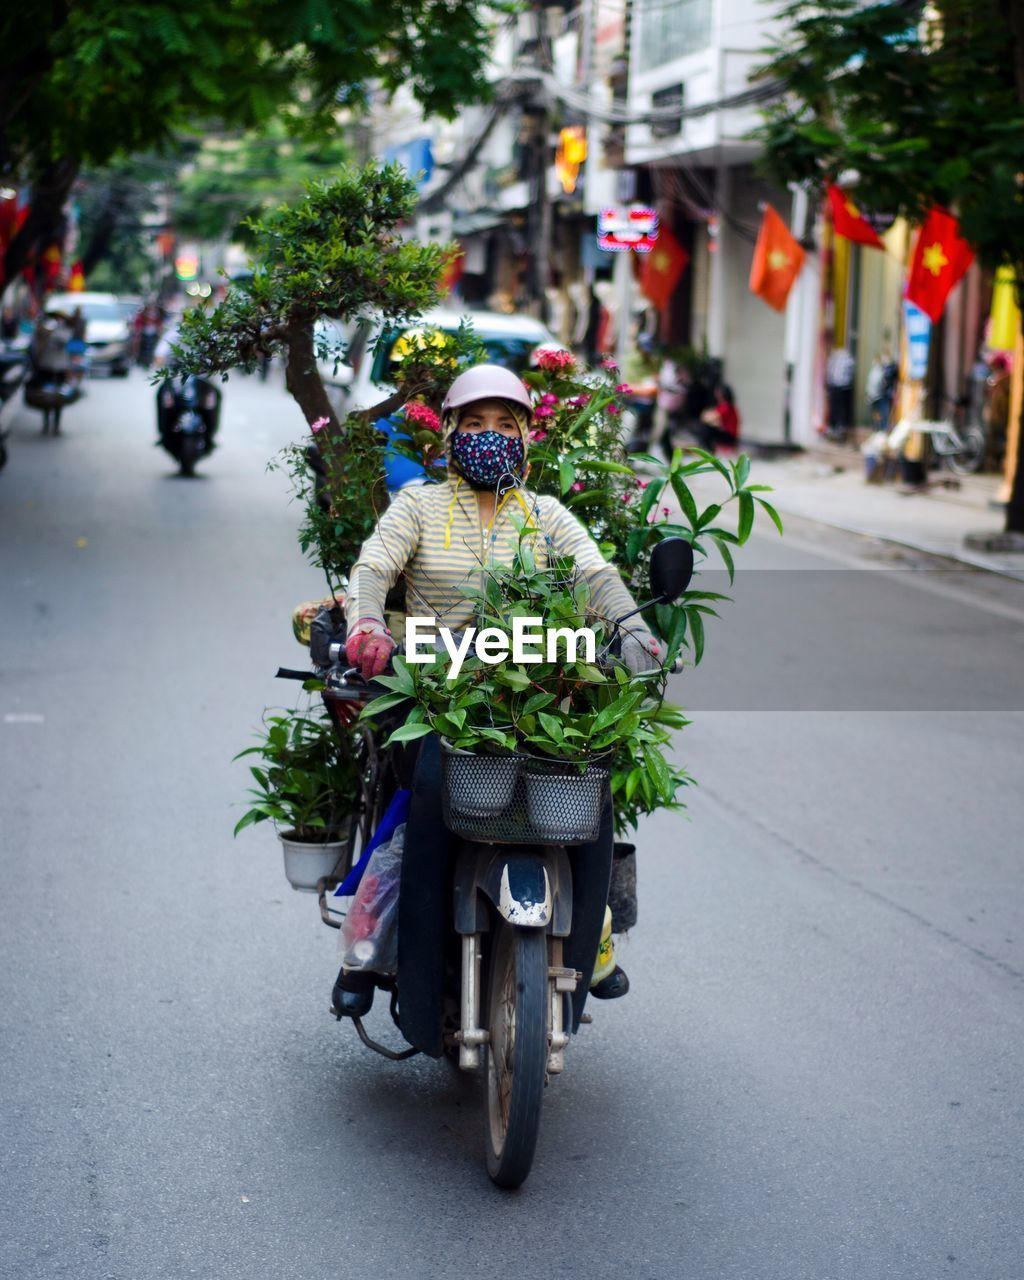 Man With Potted Plant Riding Motorcycle On Road In City